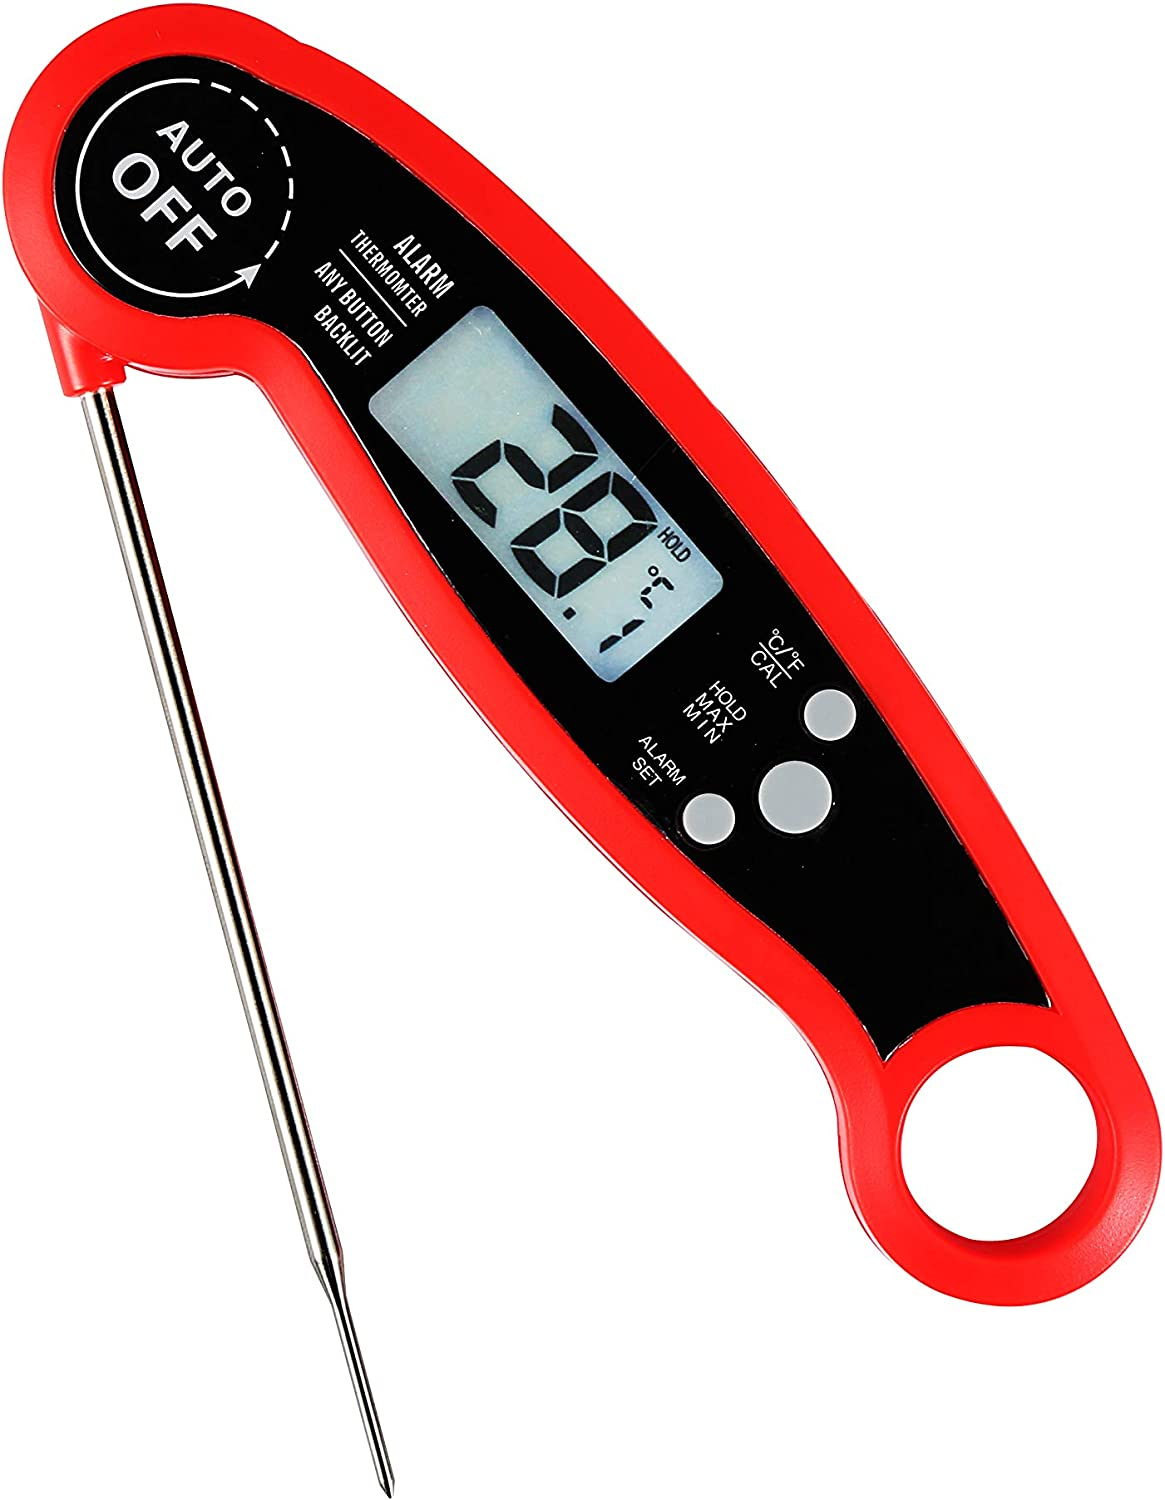 Instant Read Meat Thermometer - Best Waterproof Ultra Fast Thermometer with Backlight & Calibration. Digital Food Thermometer for Kitchen, Outdoor Cooking, BBQ, and Grill! (Red)